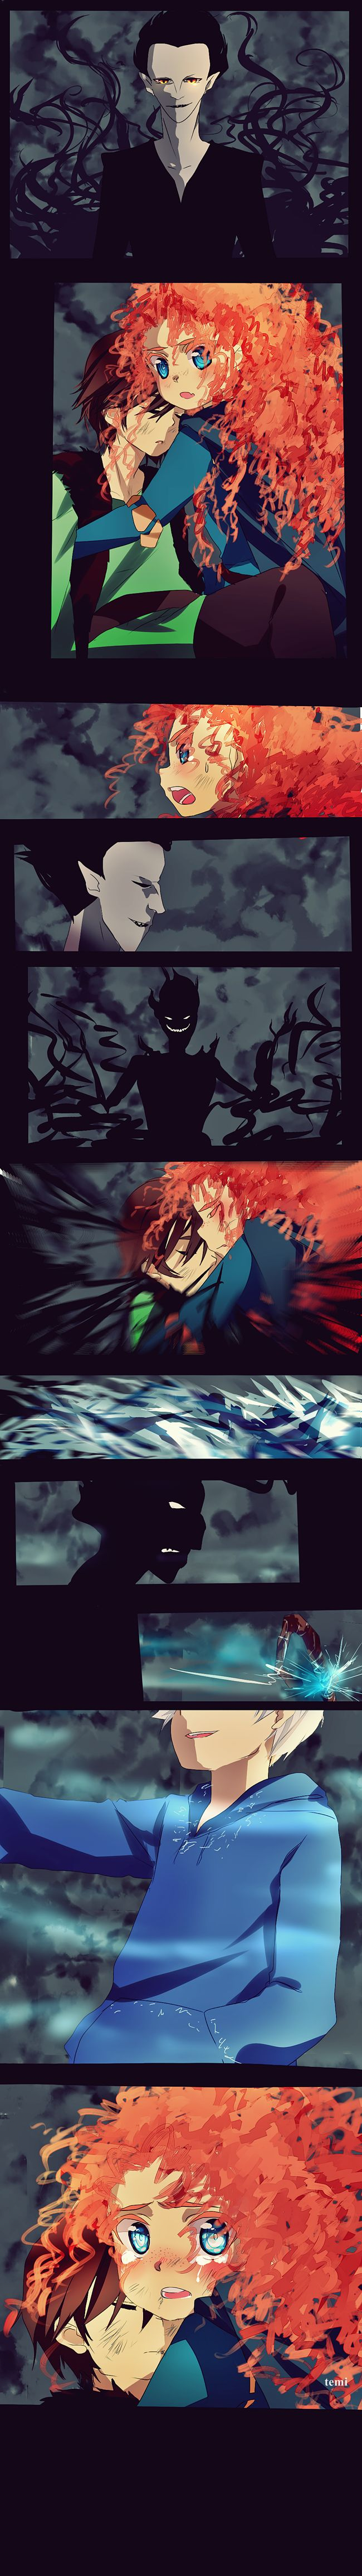 rotbtd comic by ~temiji on deviantART. THIS IS SO AWESOME KNVFGNLJVDDGJKKHDR IT'S A MIX OF MY FAVE ANIMATED MOVIES!!! *dies*